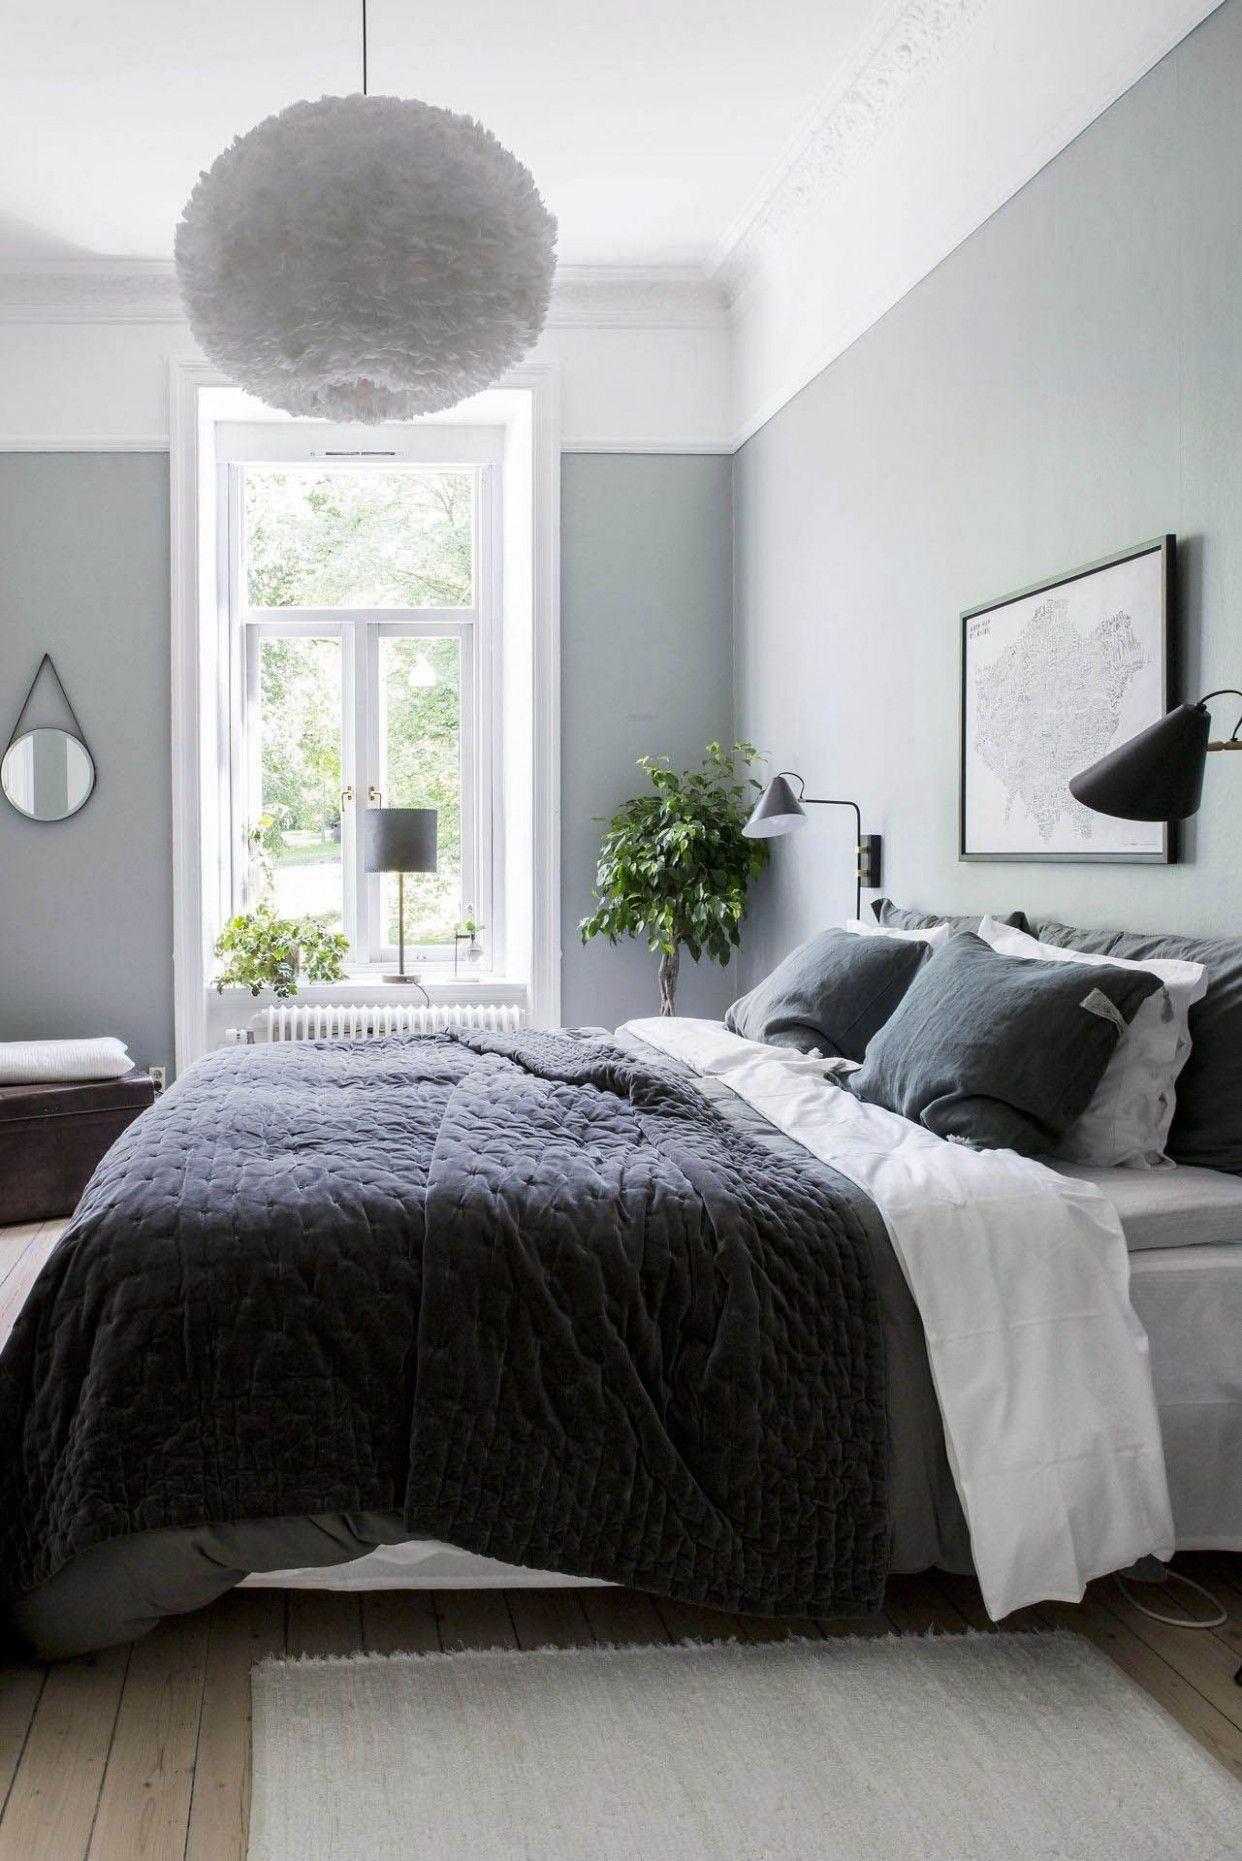 Unique Bedroom Ideas Nz  Sage green bedroom, Home decor bedroom